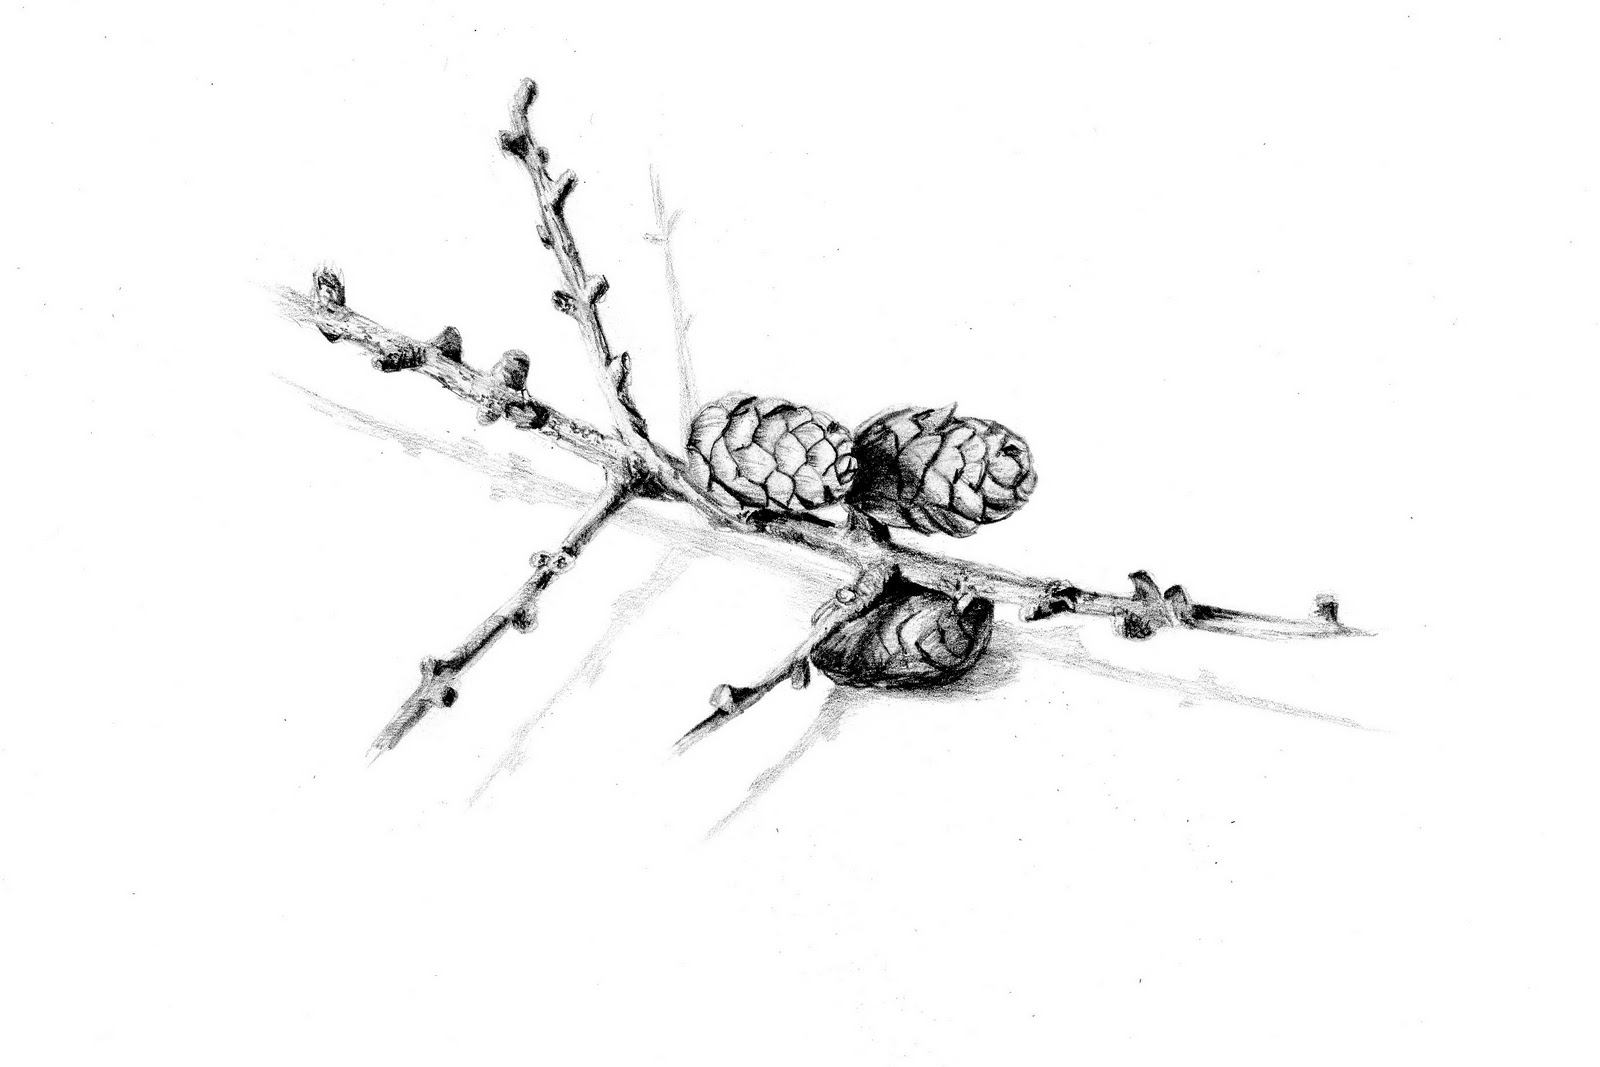 Nature Objects Drawing to Draw Natural Objects as